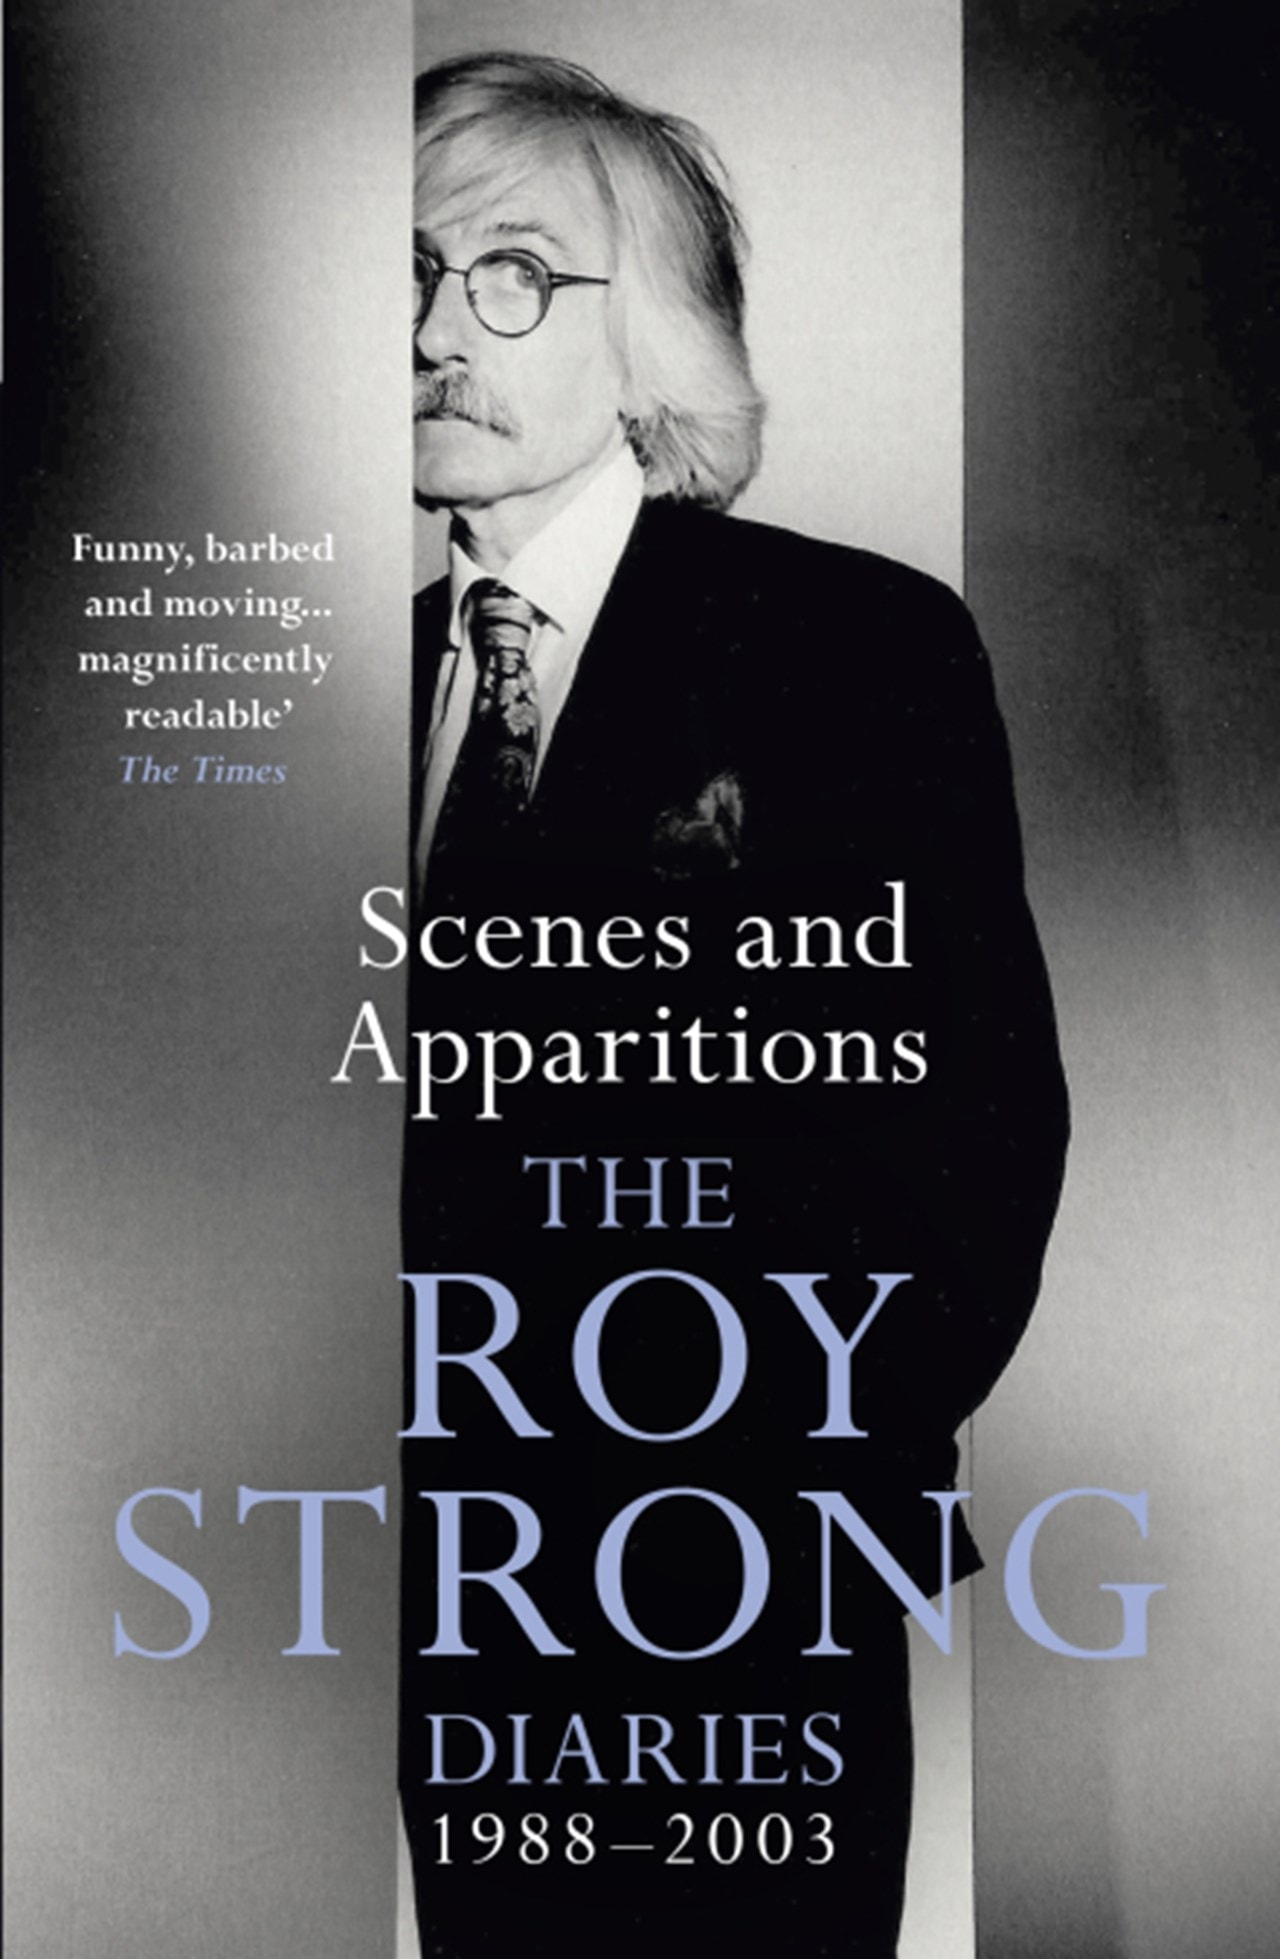 Scenes and Apparitions: The Roy Strong Diaries 1988-2003 (Vol 2) - 1